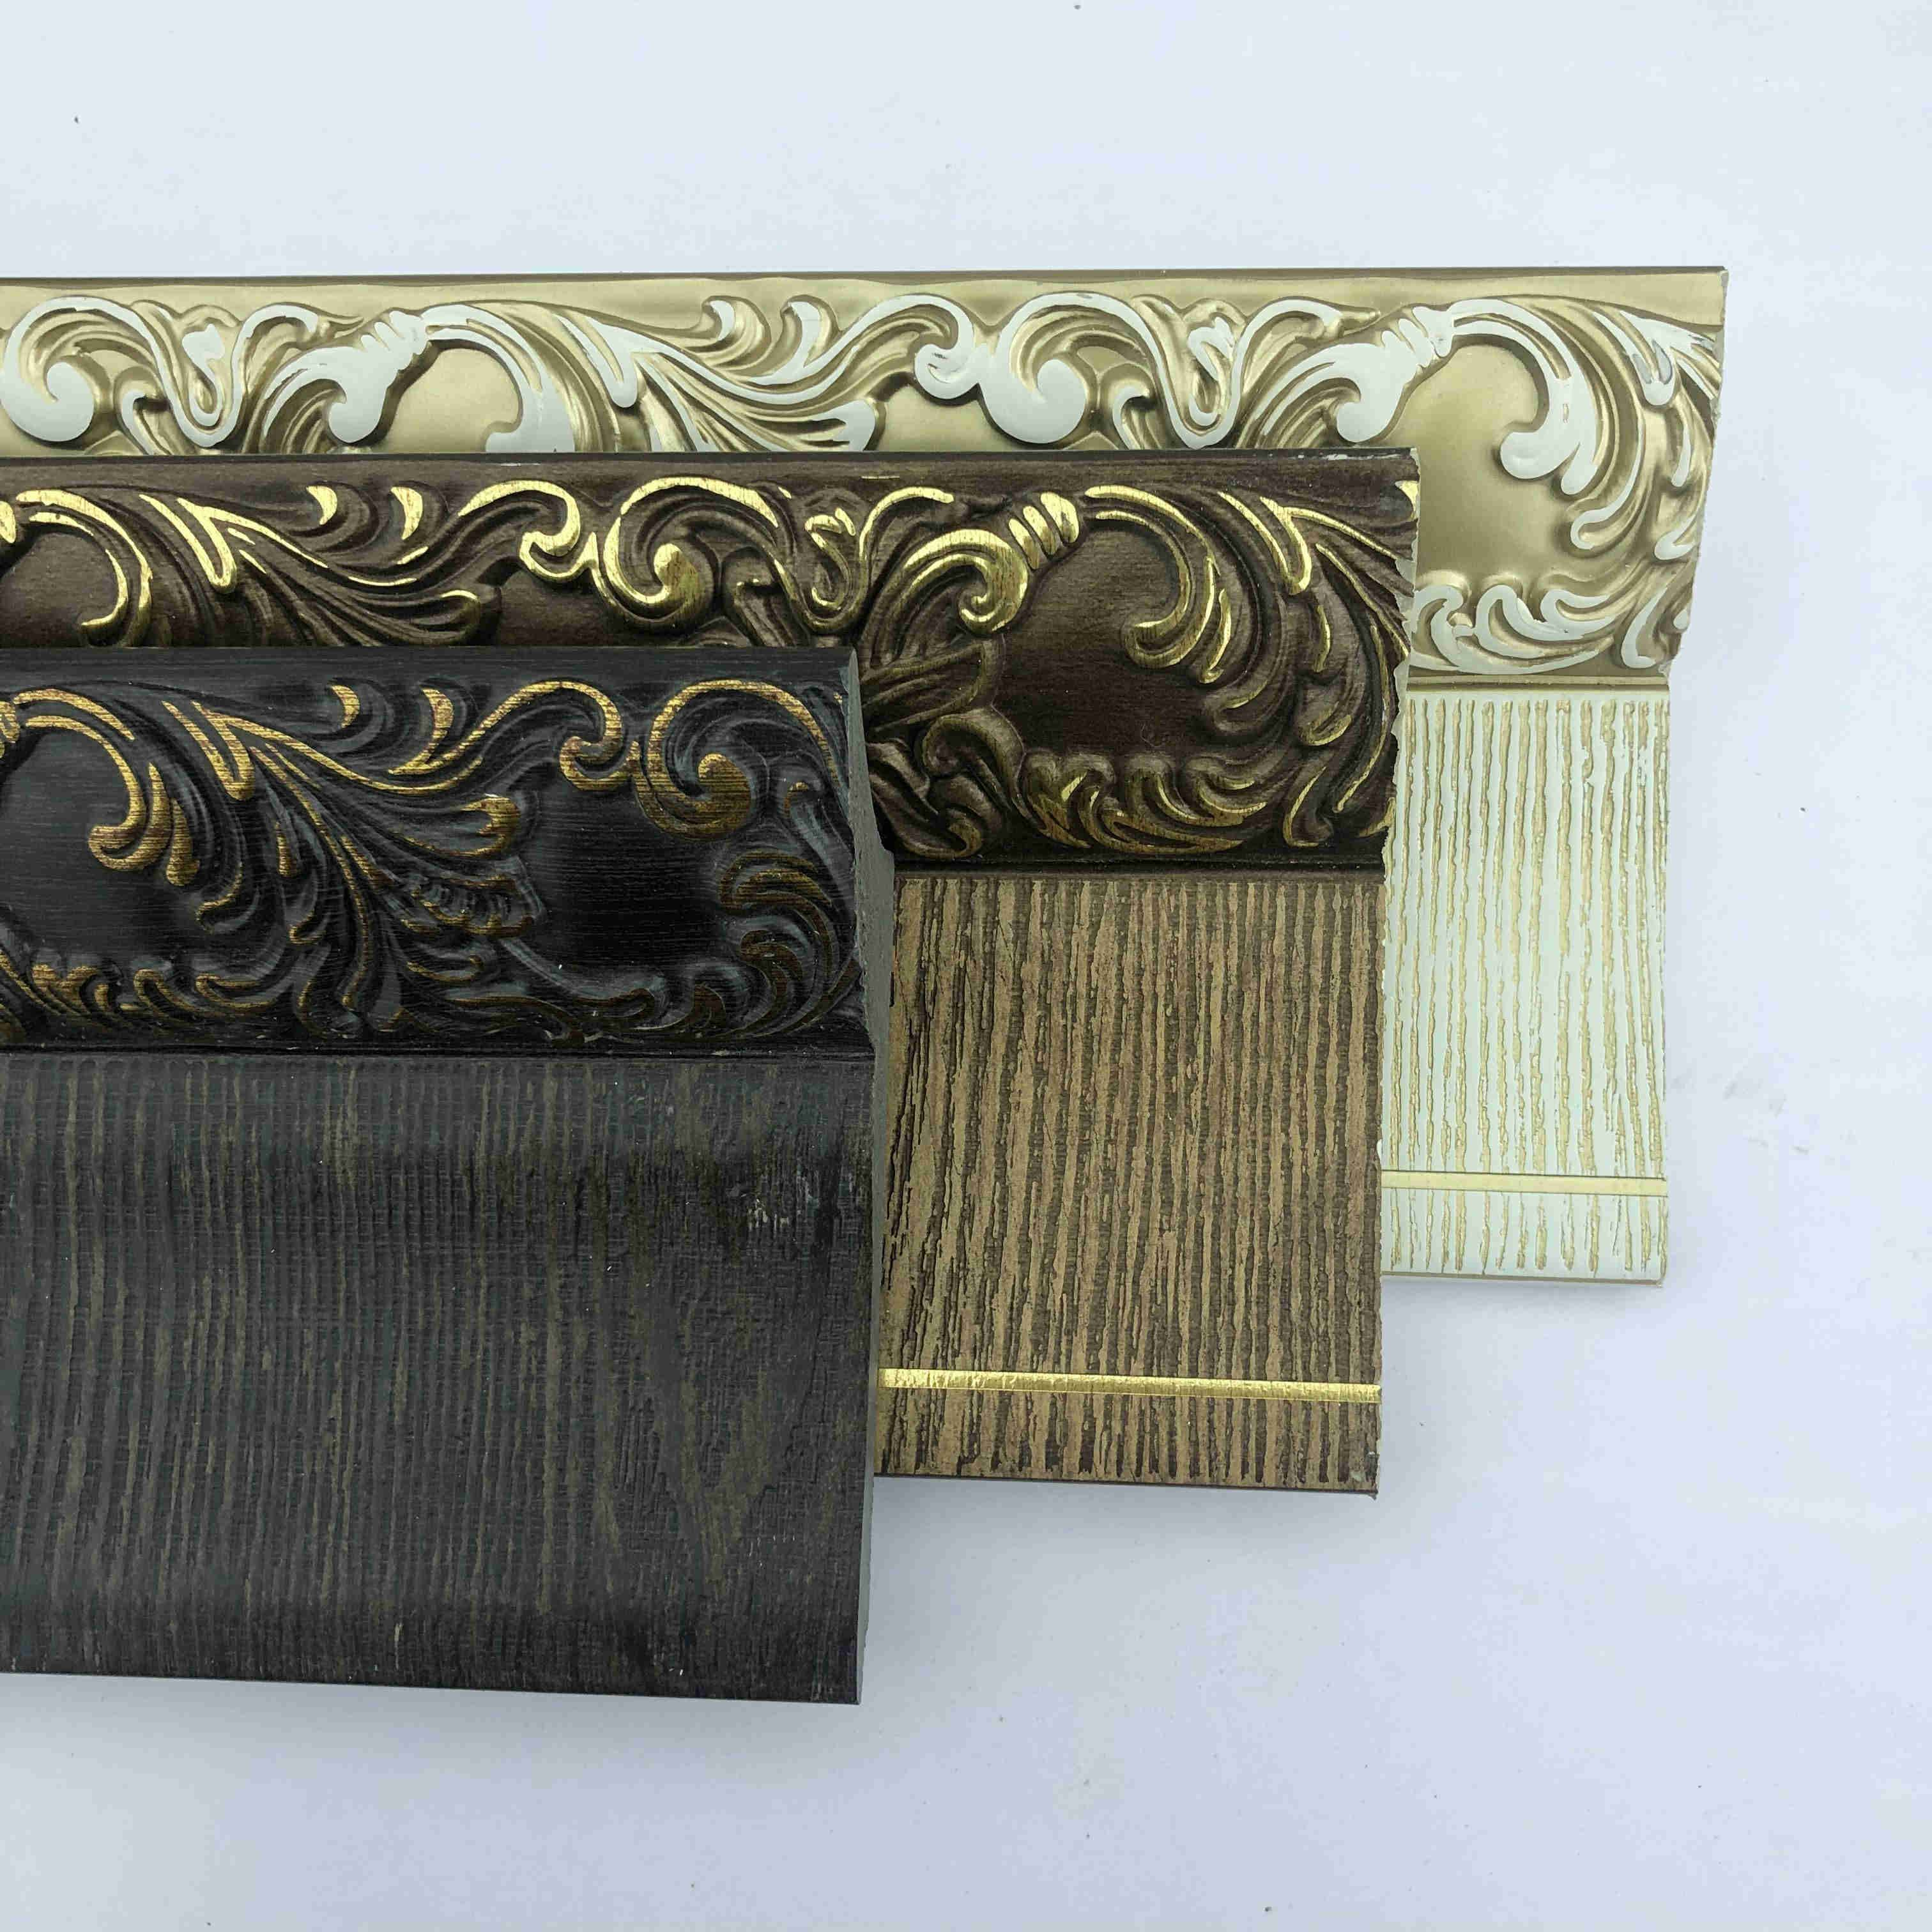 European style decorative ceiling molding artistic wood like cornice PS moulding line